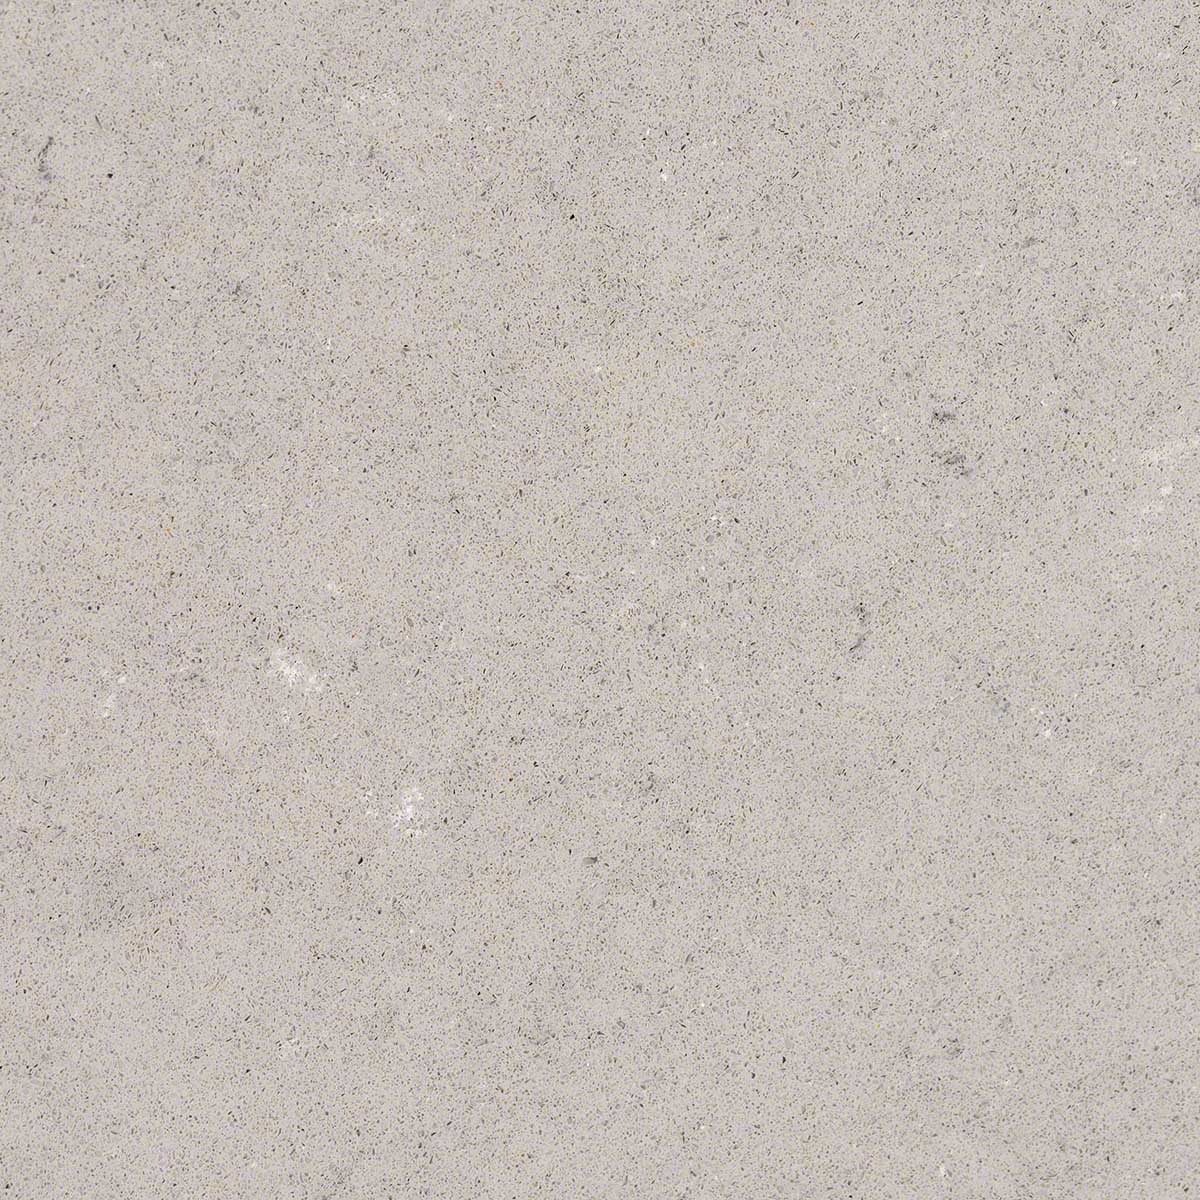 Fossil gray divine stoneworks for Quartz countertops or granite